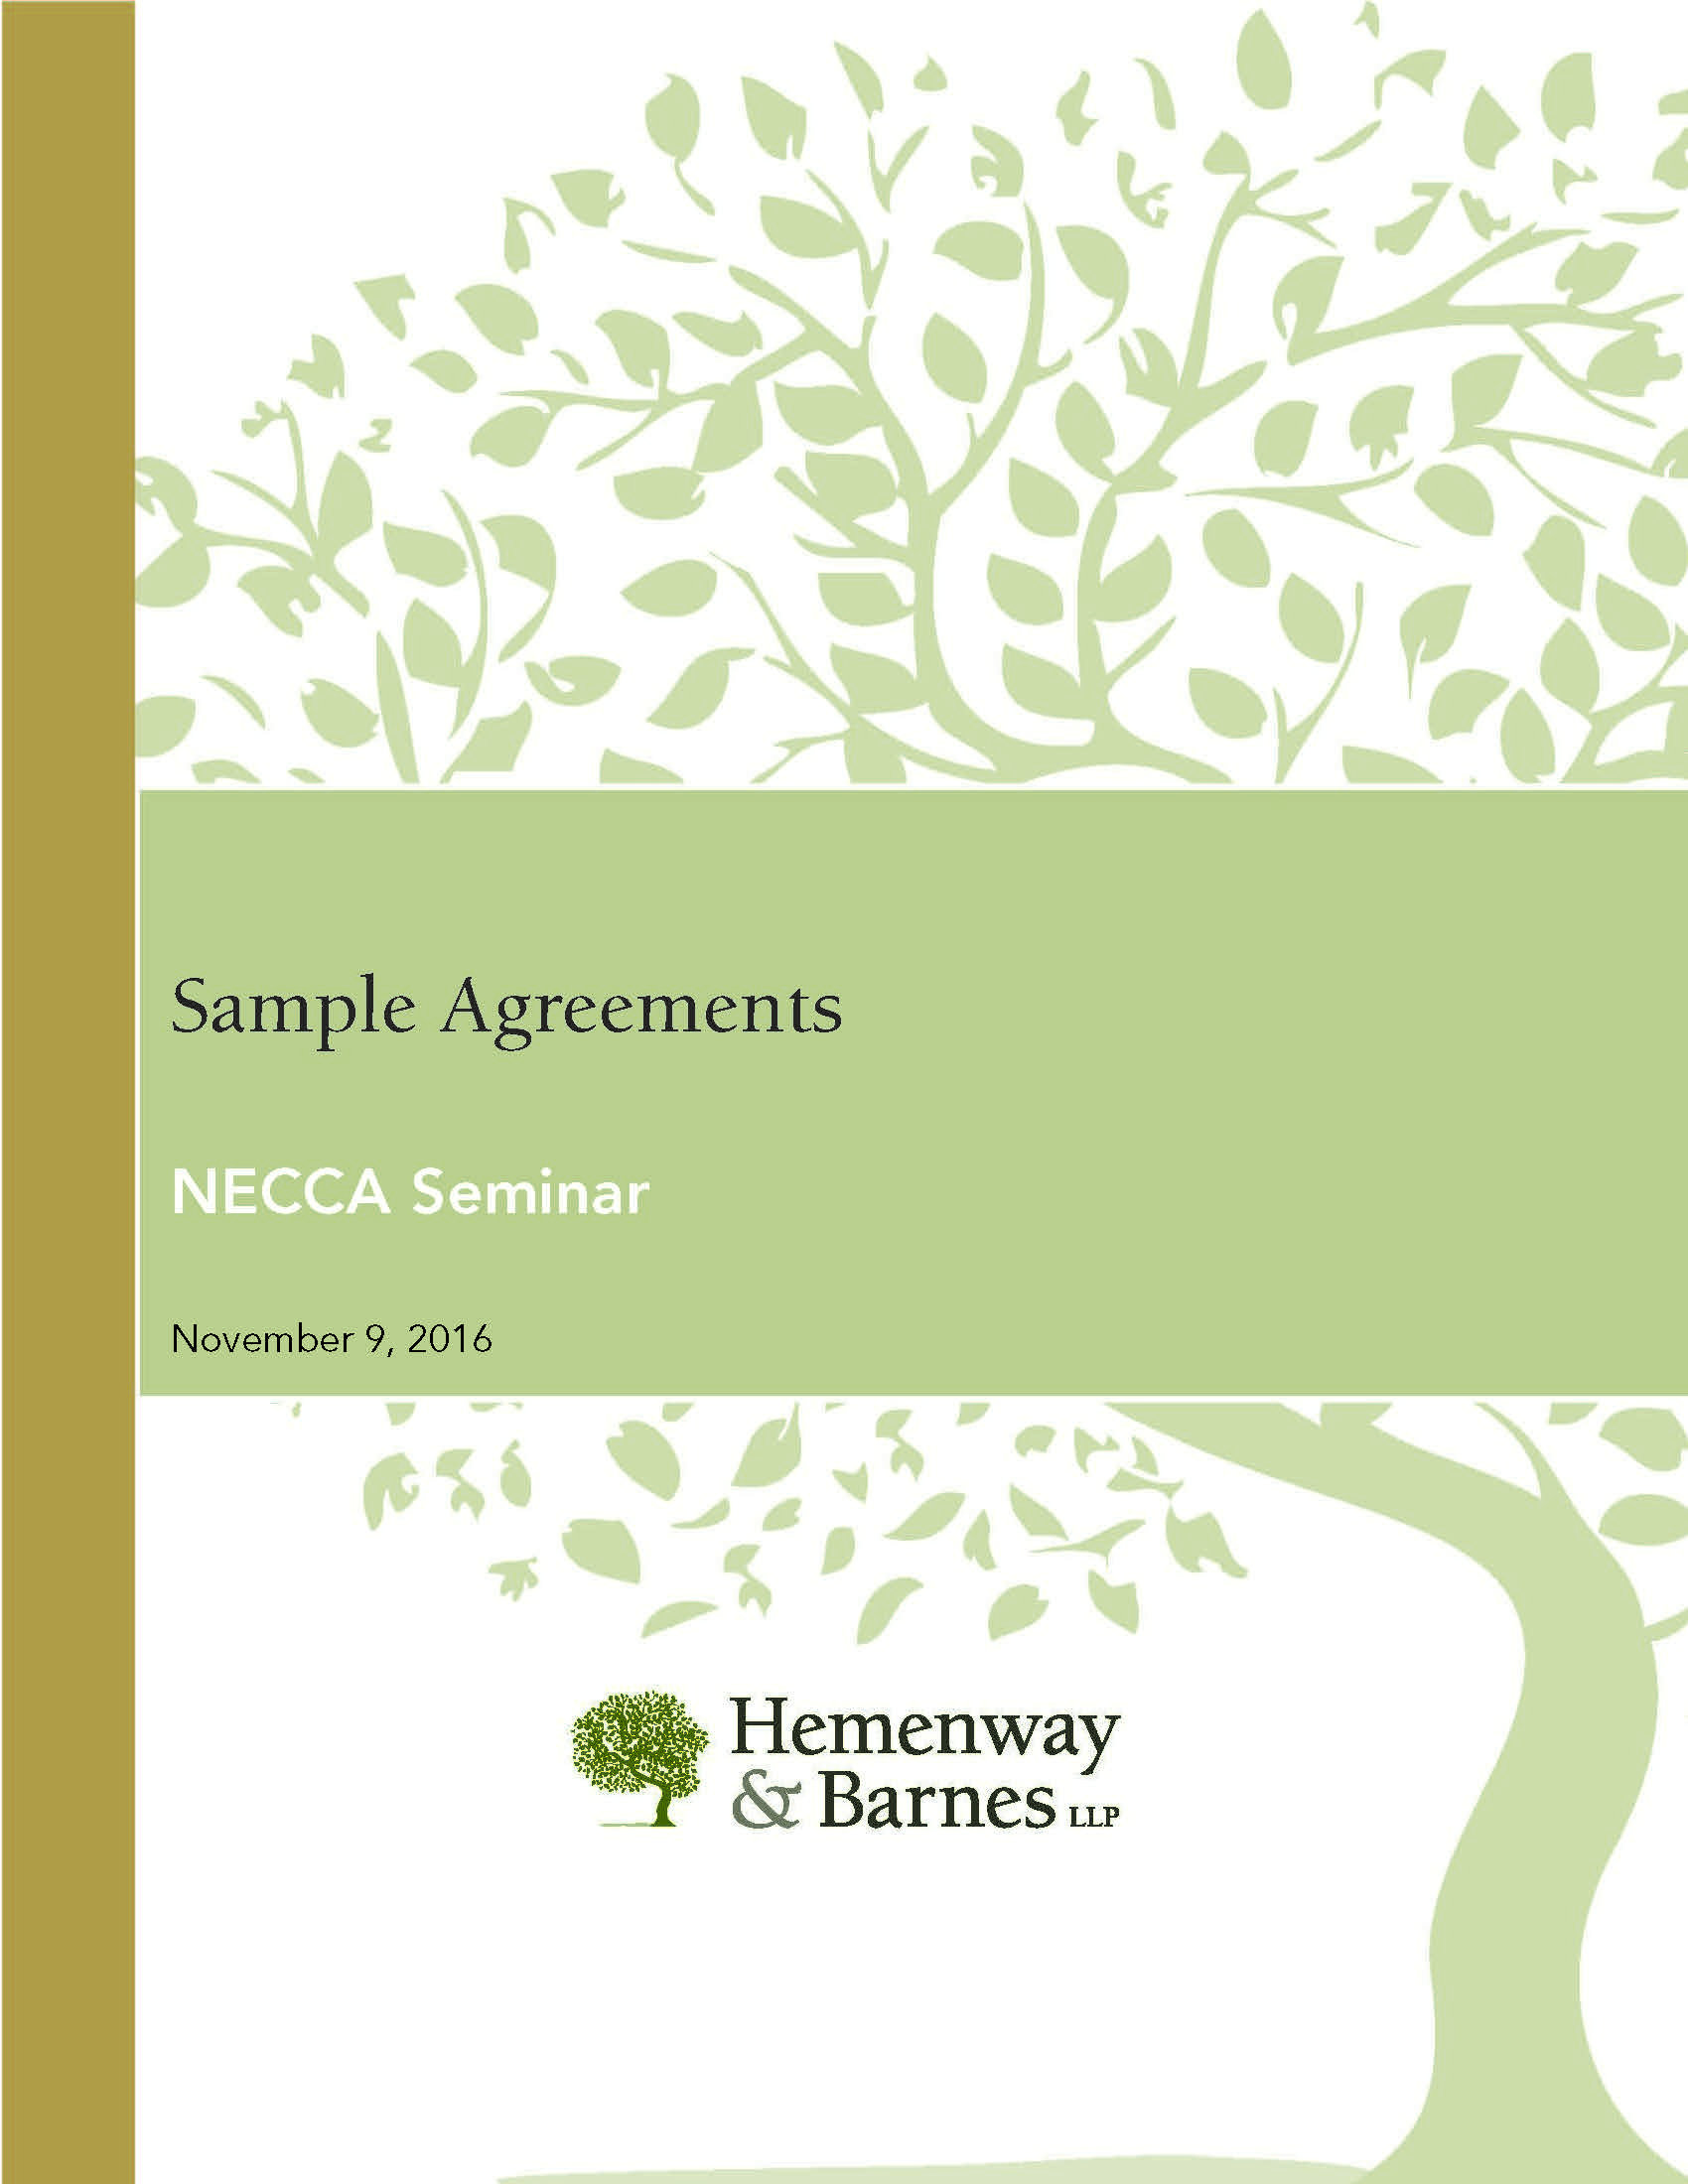 [PDF] NECCA seminar handout: sample agreements